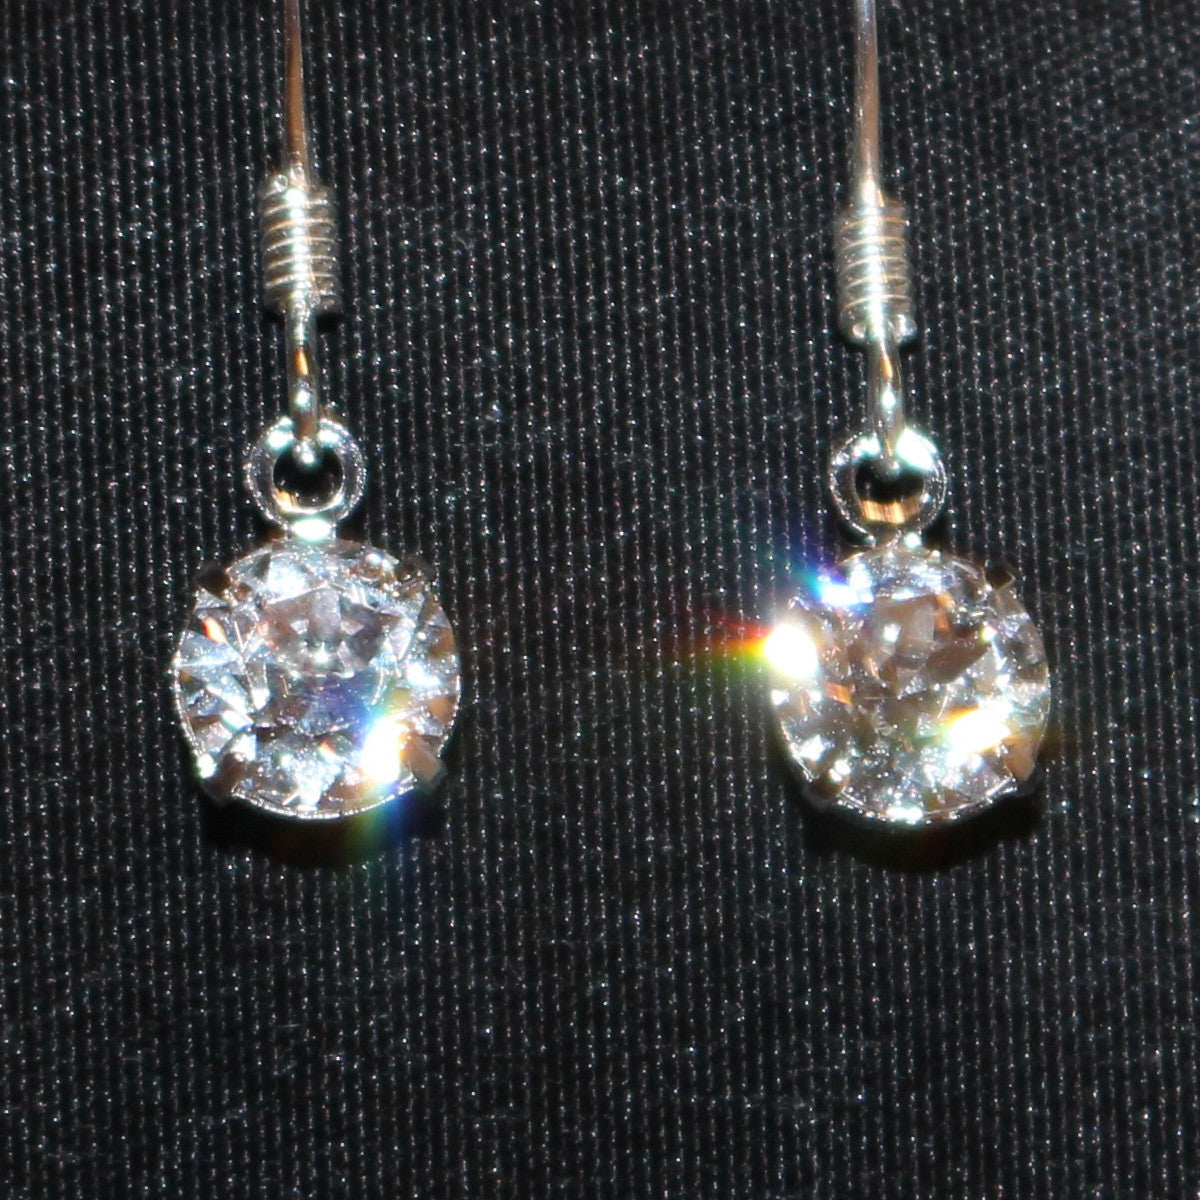 Swarovski Crystal Earrings - Small Earrings - Drop Earrings